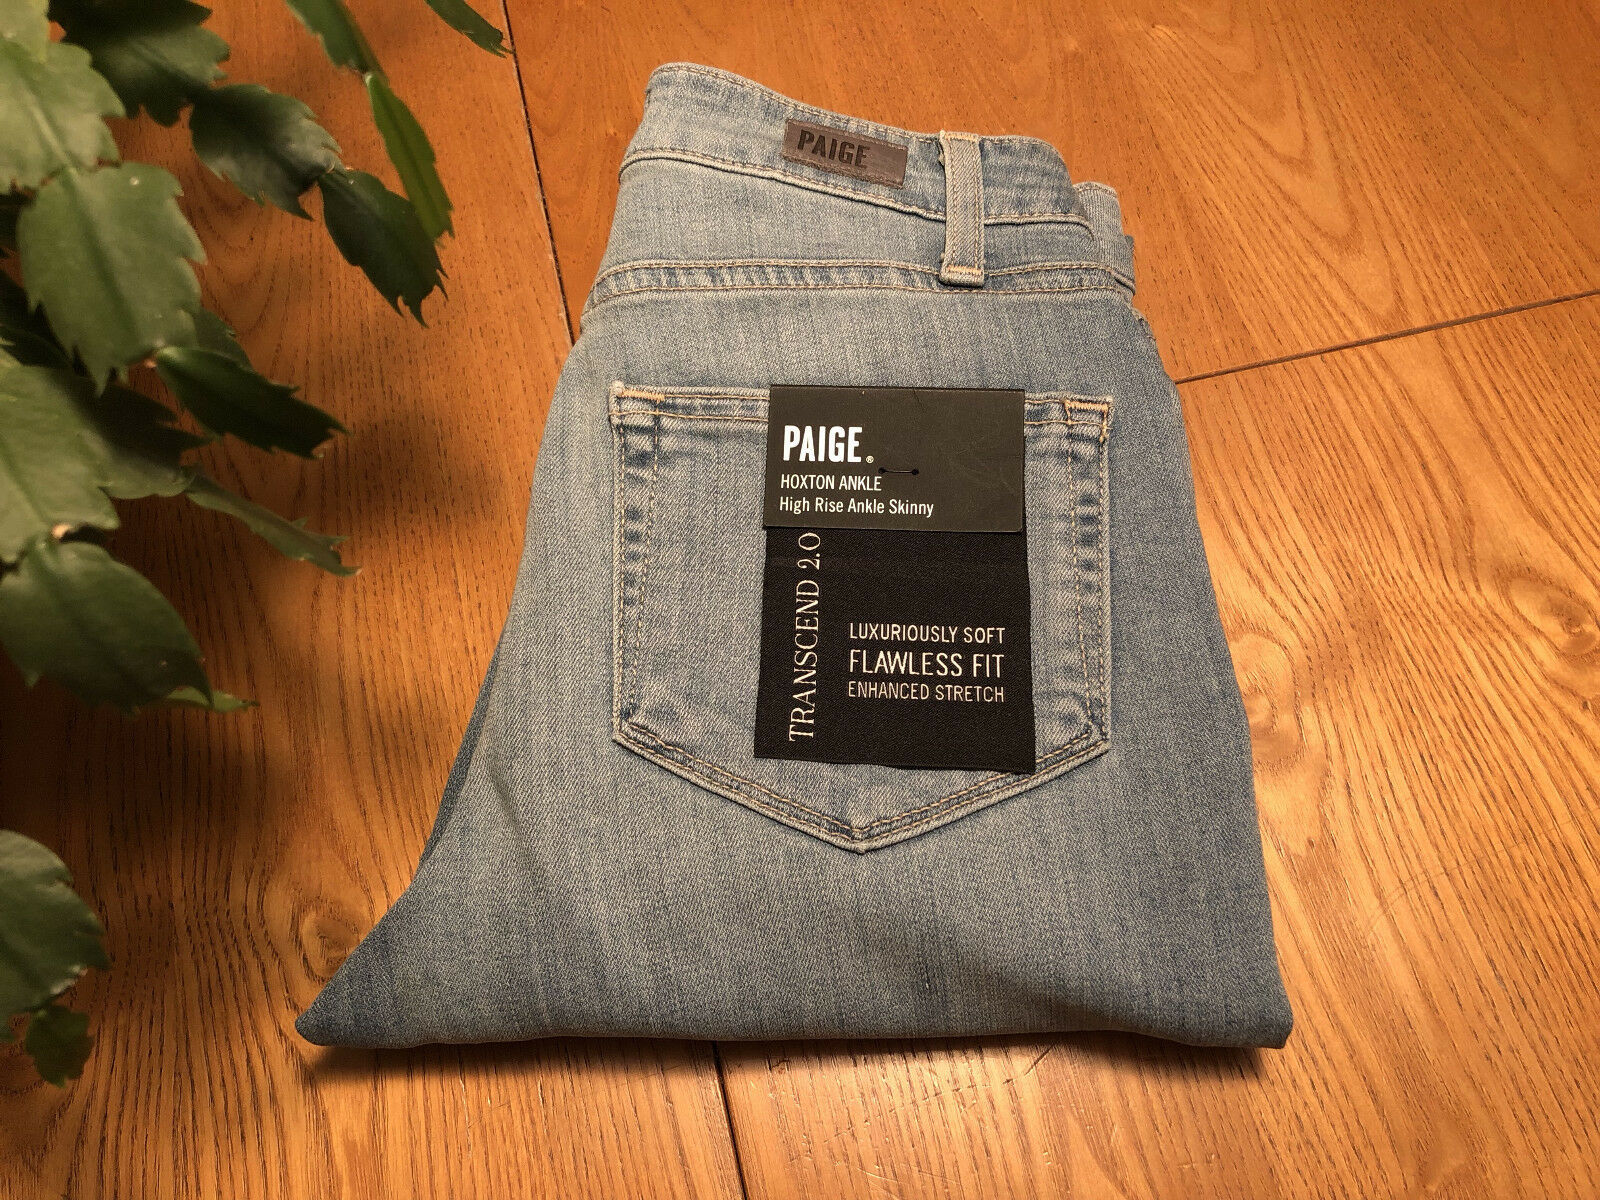 PAIGE TRANSCEND 2.0 HOXTON HIGH-RISE ANKLE SKINNY JEANS 23 X 28.5 NWT... NICE